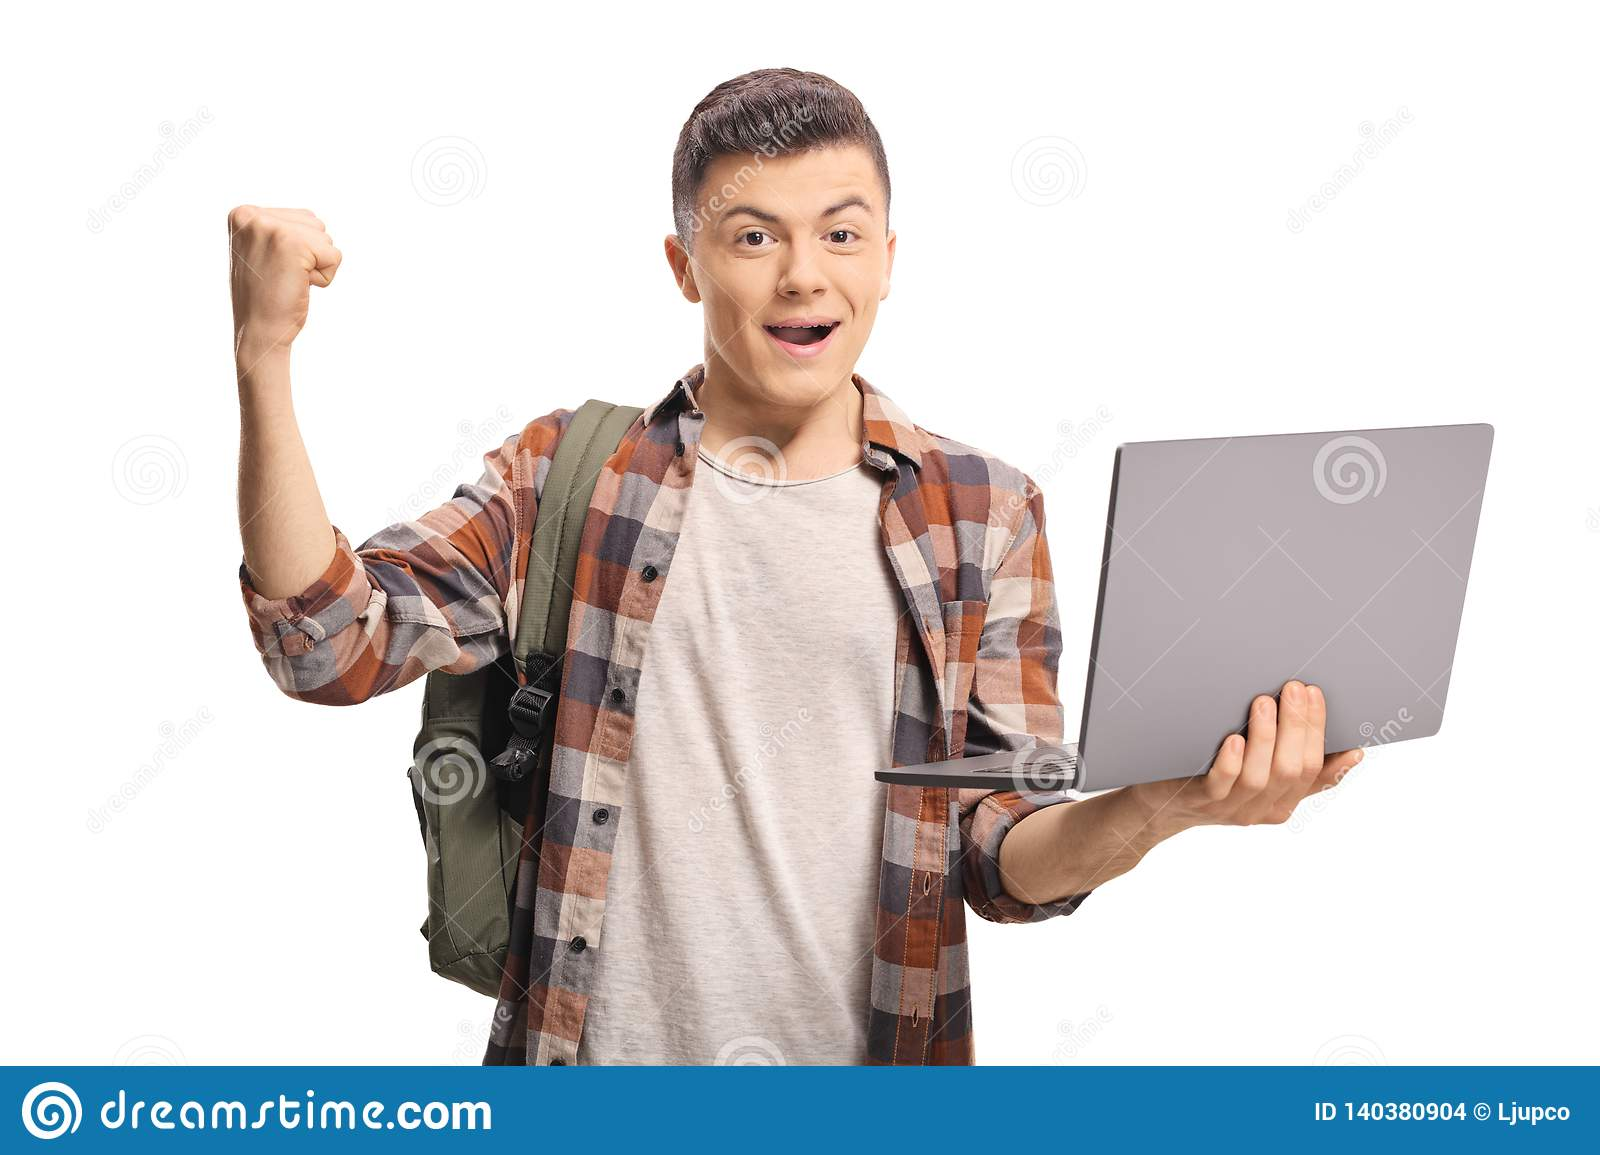 Excited teenage boy holding a laptop and gesturing with hand